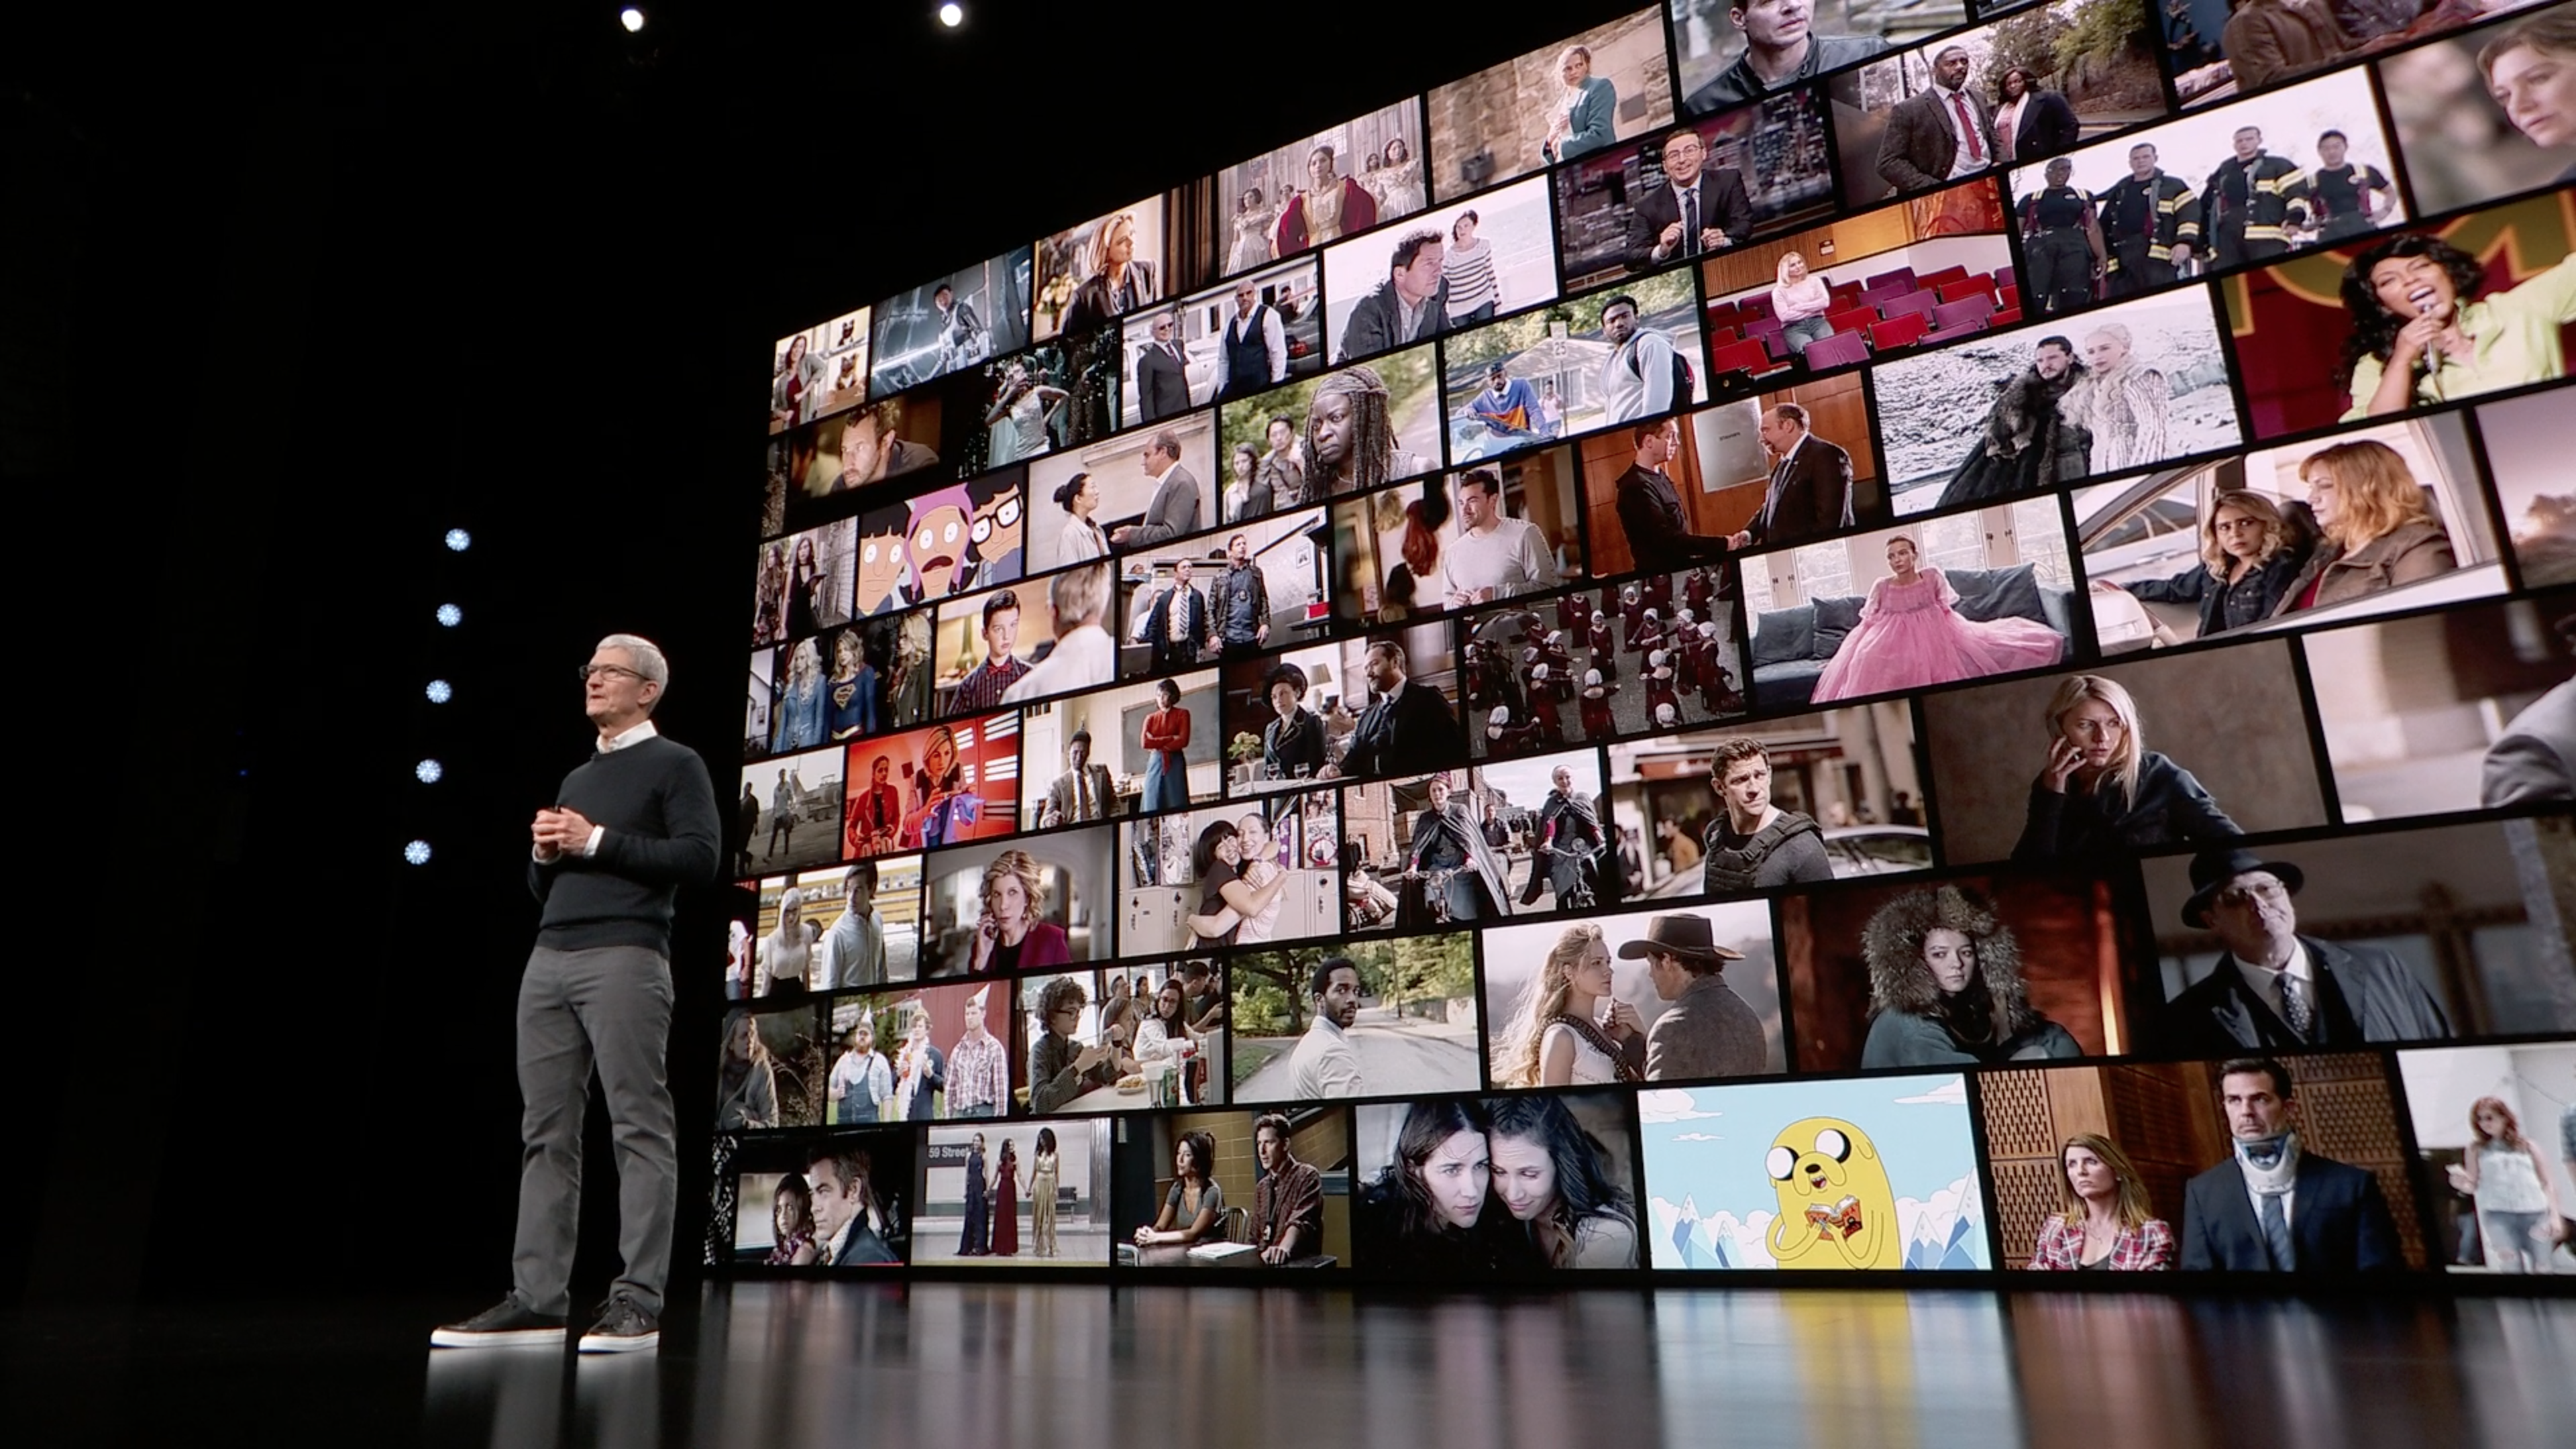 Welcome to the new frontier of Apple TV Plus